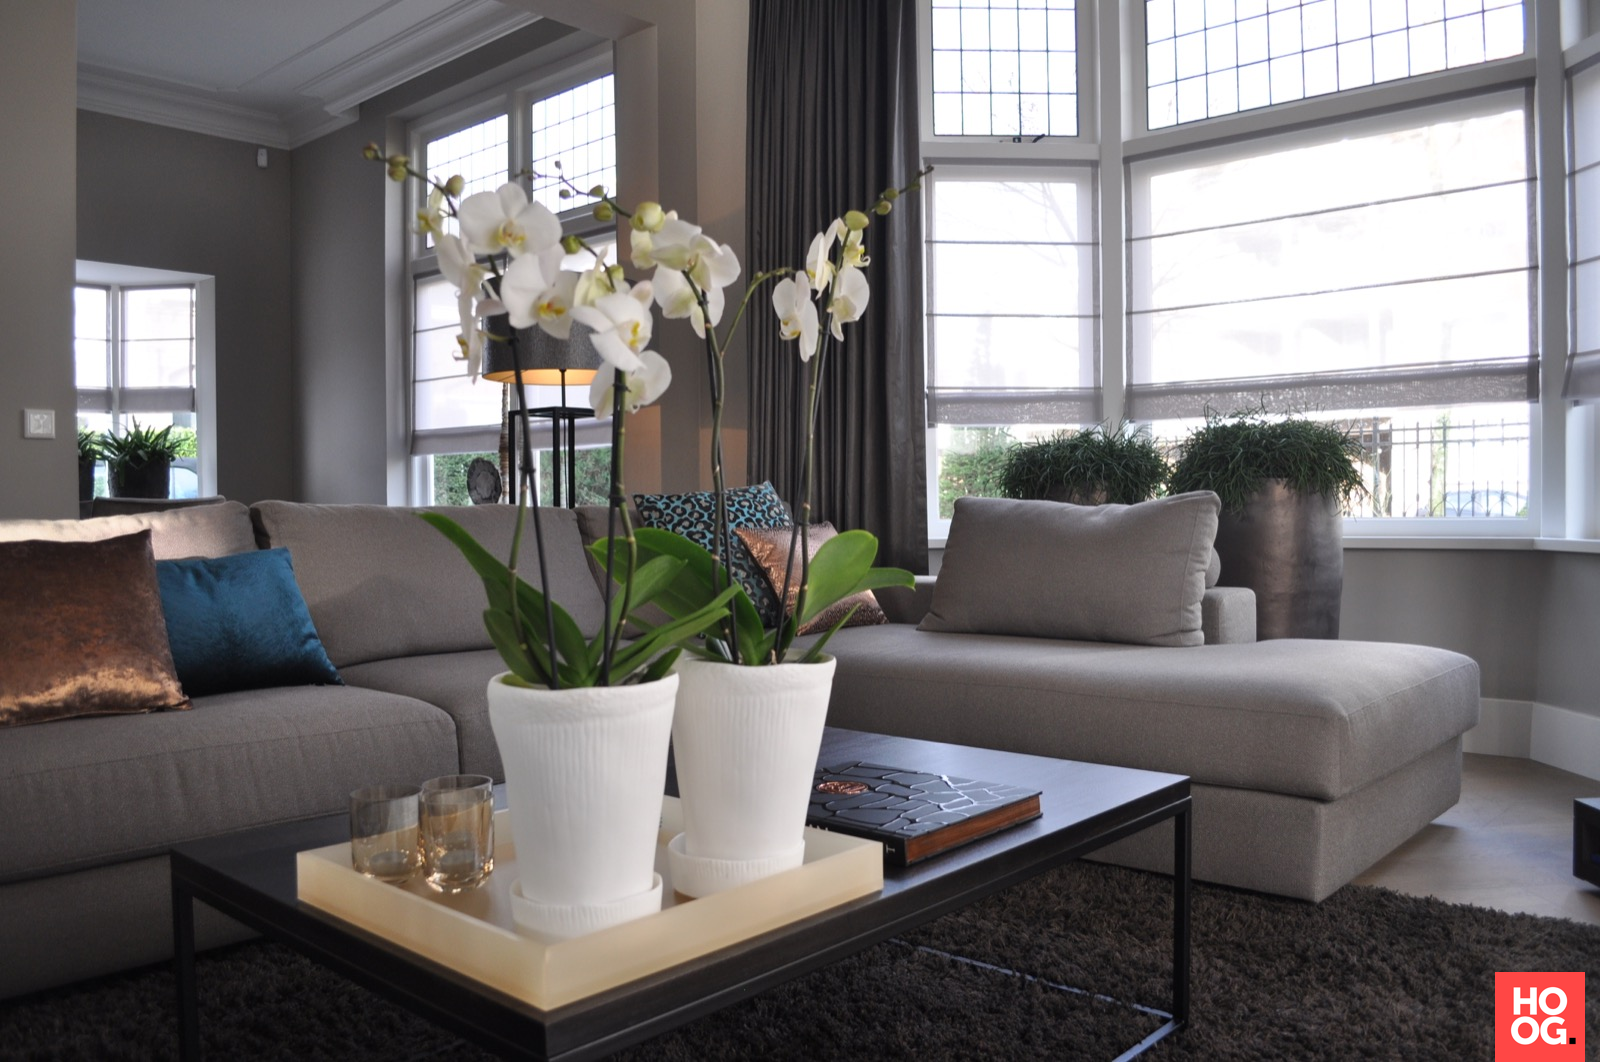 Stylish and comfort in 2020 | Living room decor, Home ... on Kingdom Outdoor Living id=14037